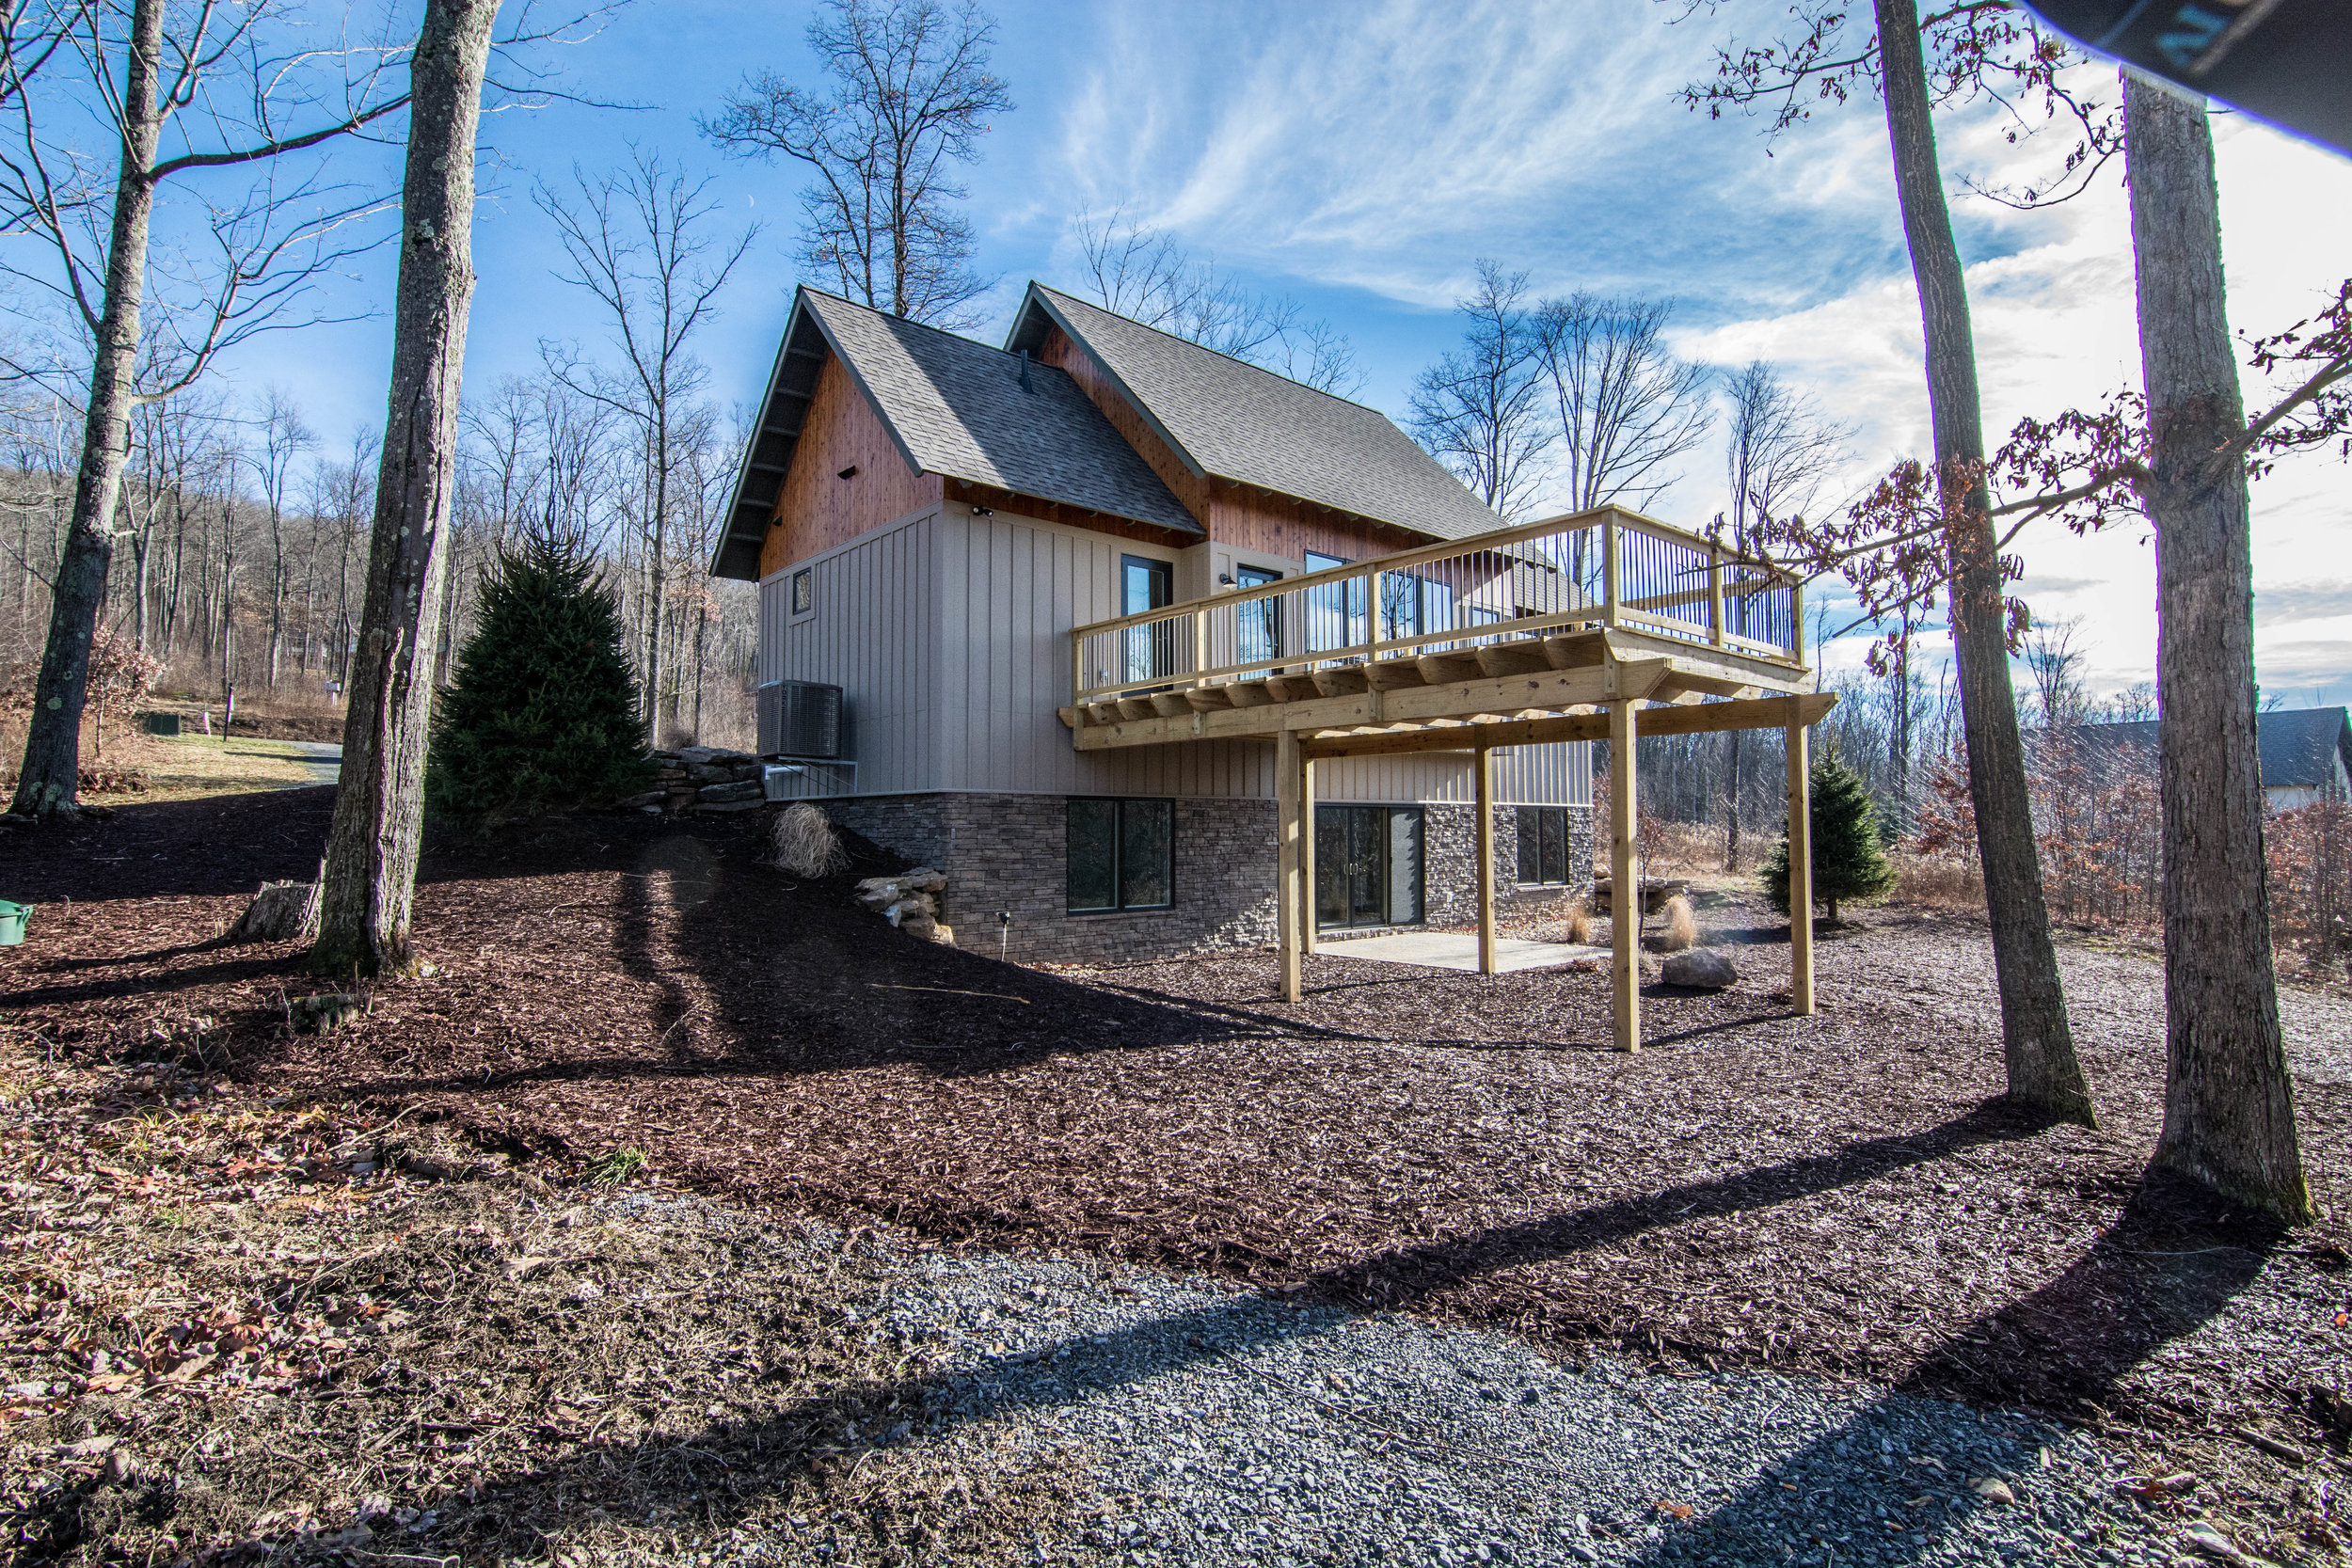 gosnell_builders_home_for_sale_ridgeview_valley08.jpg